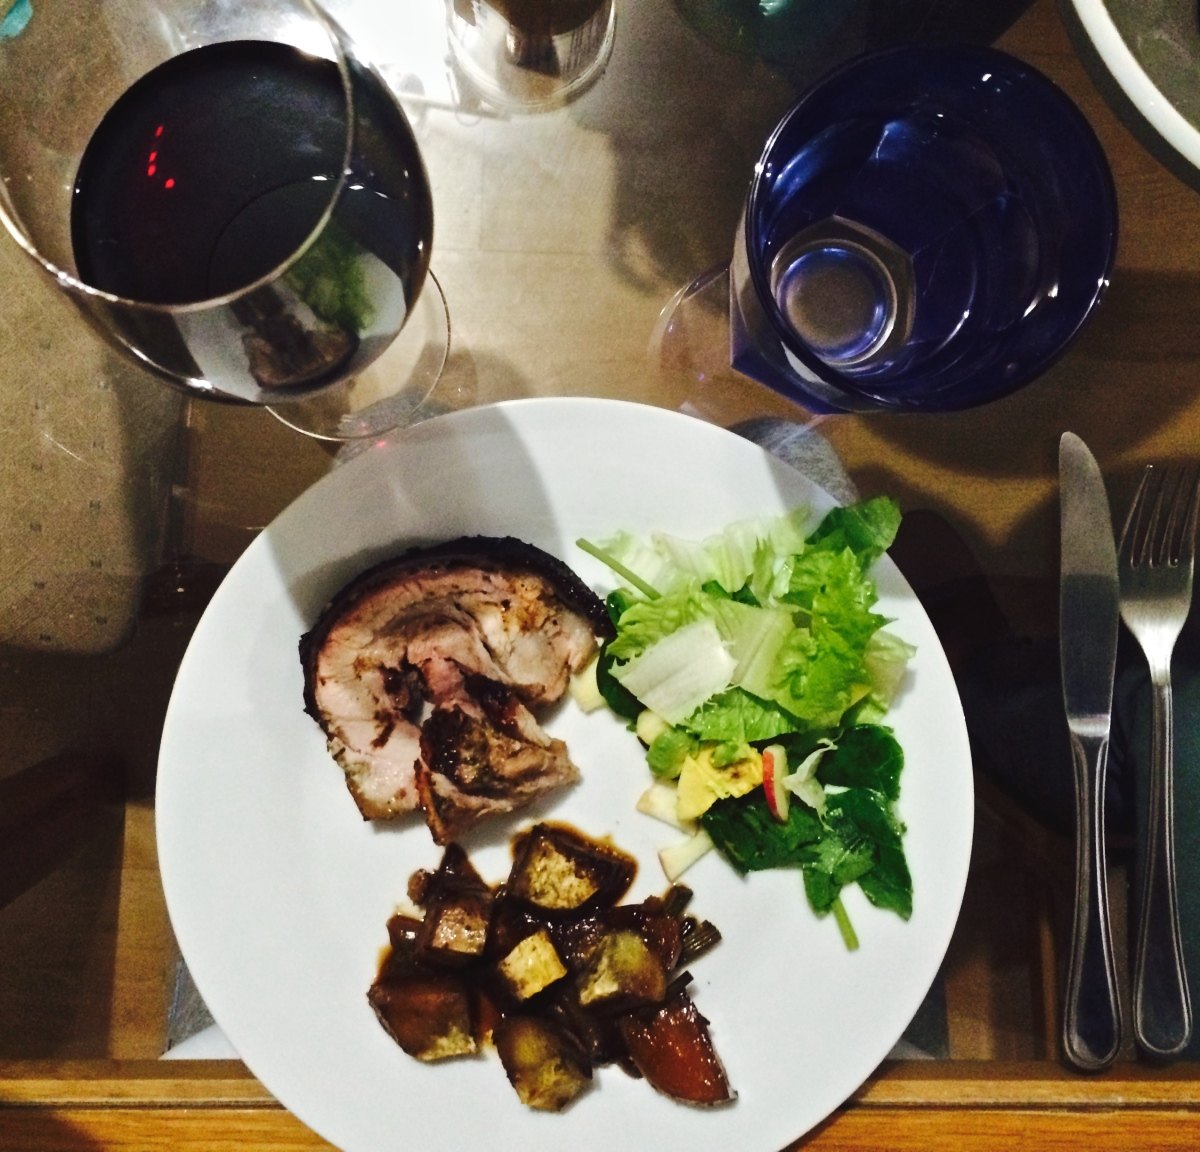 Tim Noakes' Roast Pork Belly